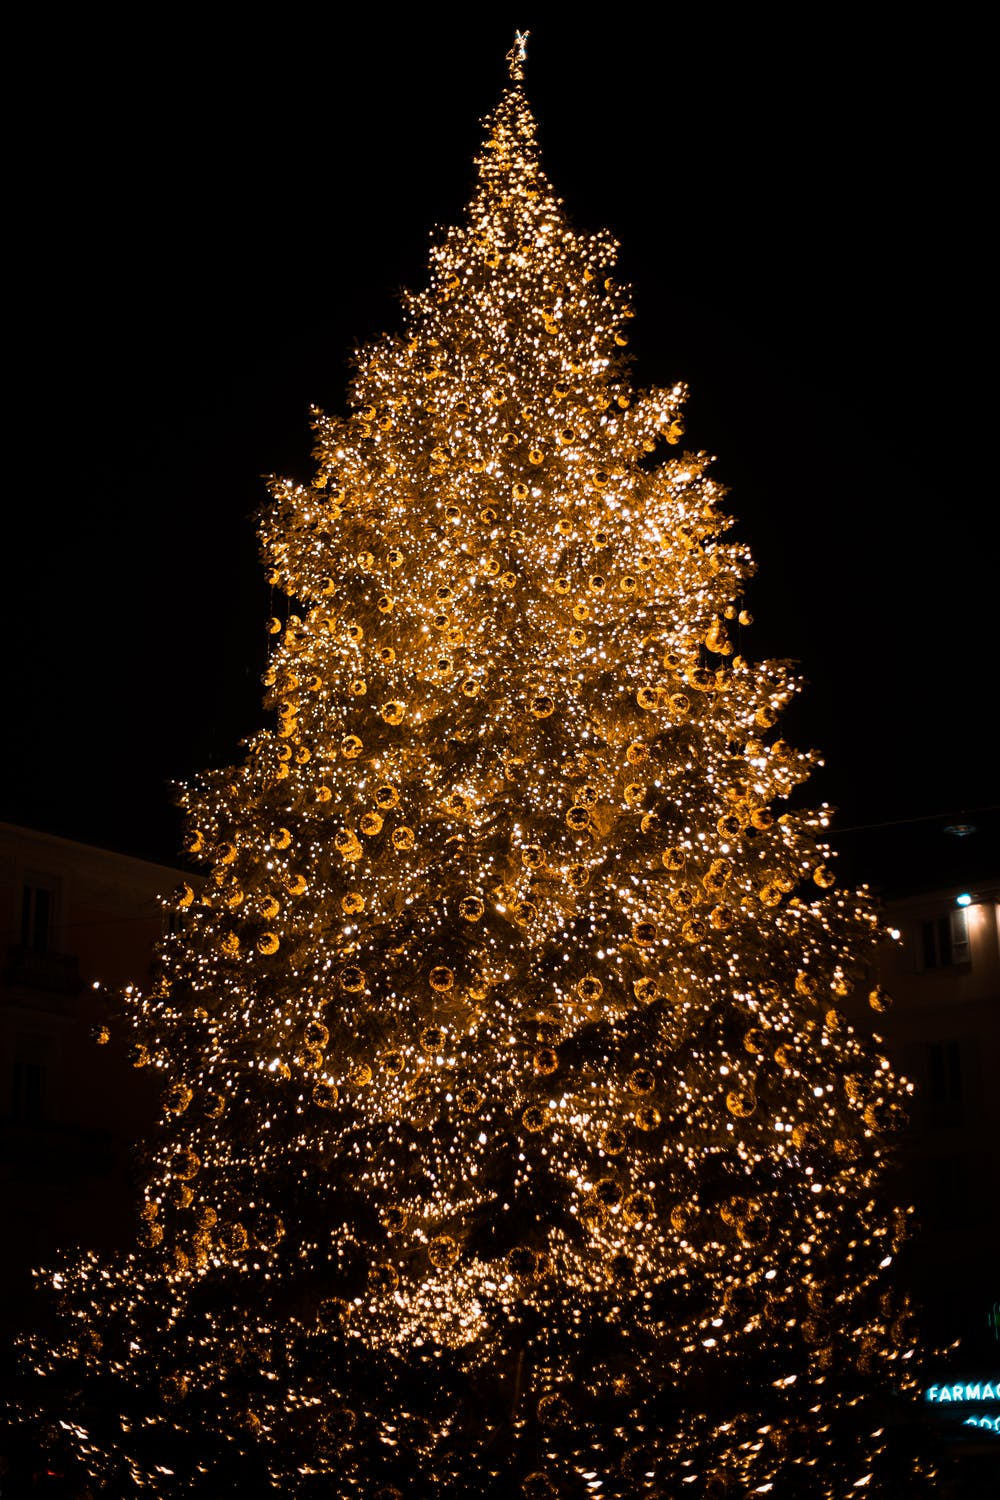 Gold Christmas tree wallpaper for iphone